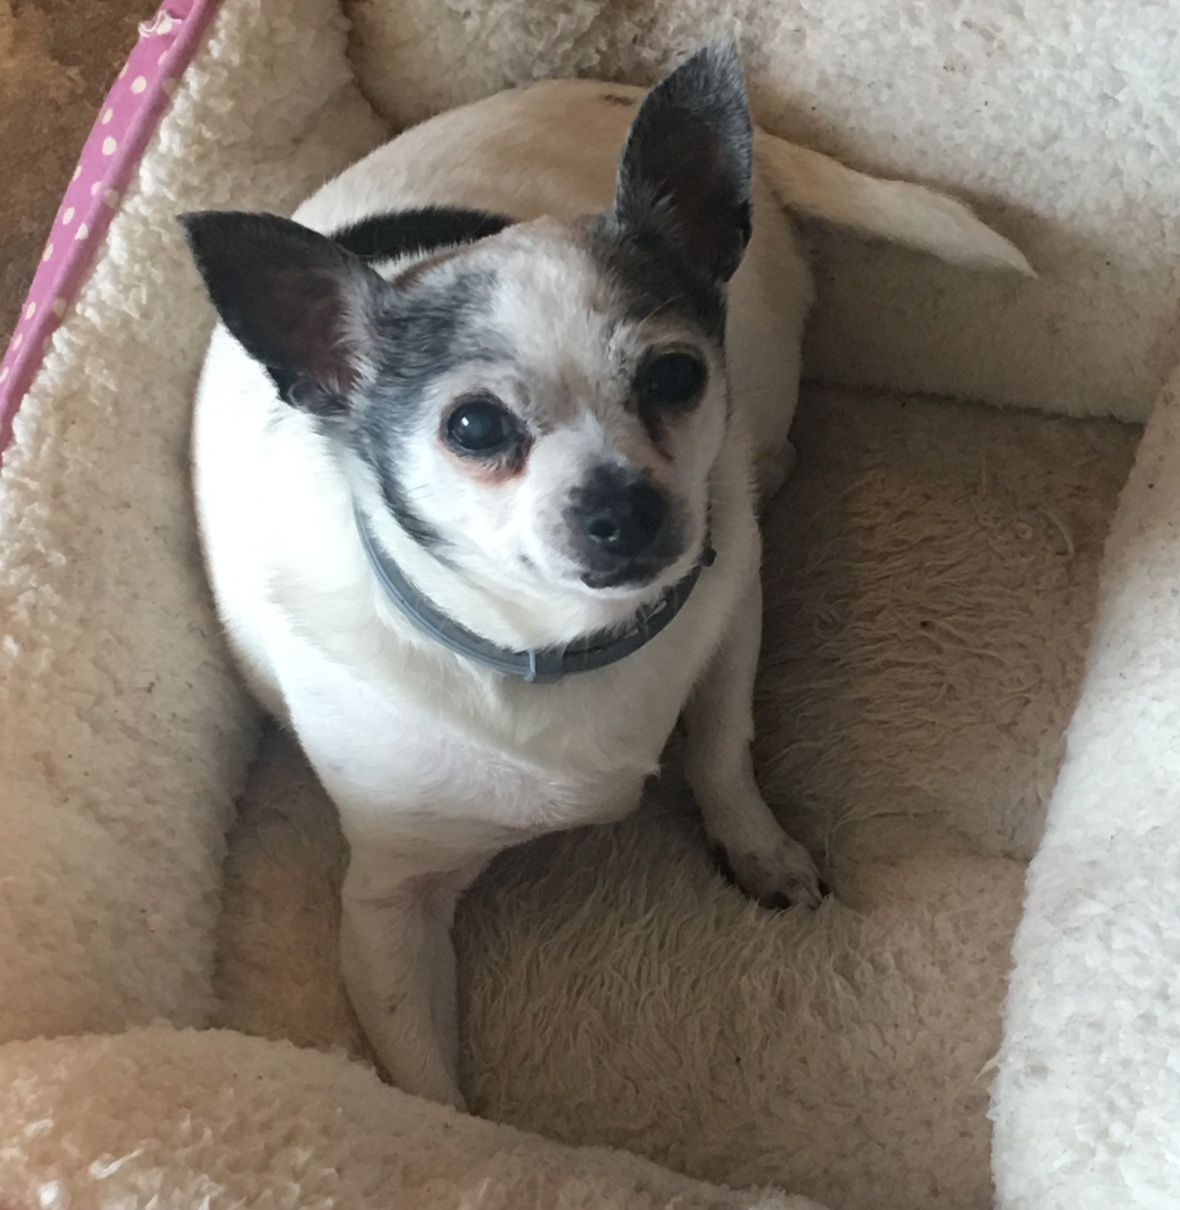 Tinkerbell is a small round chihuahua with black and white fur